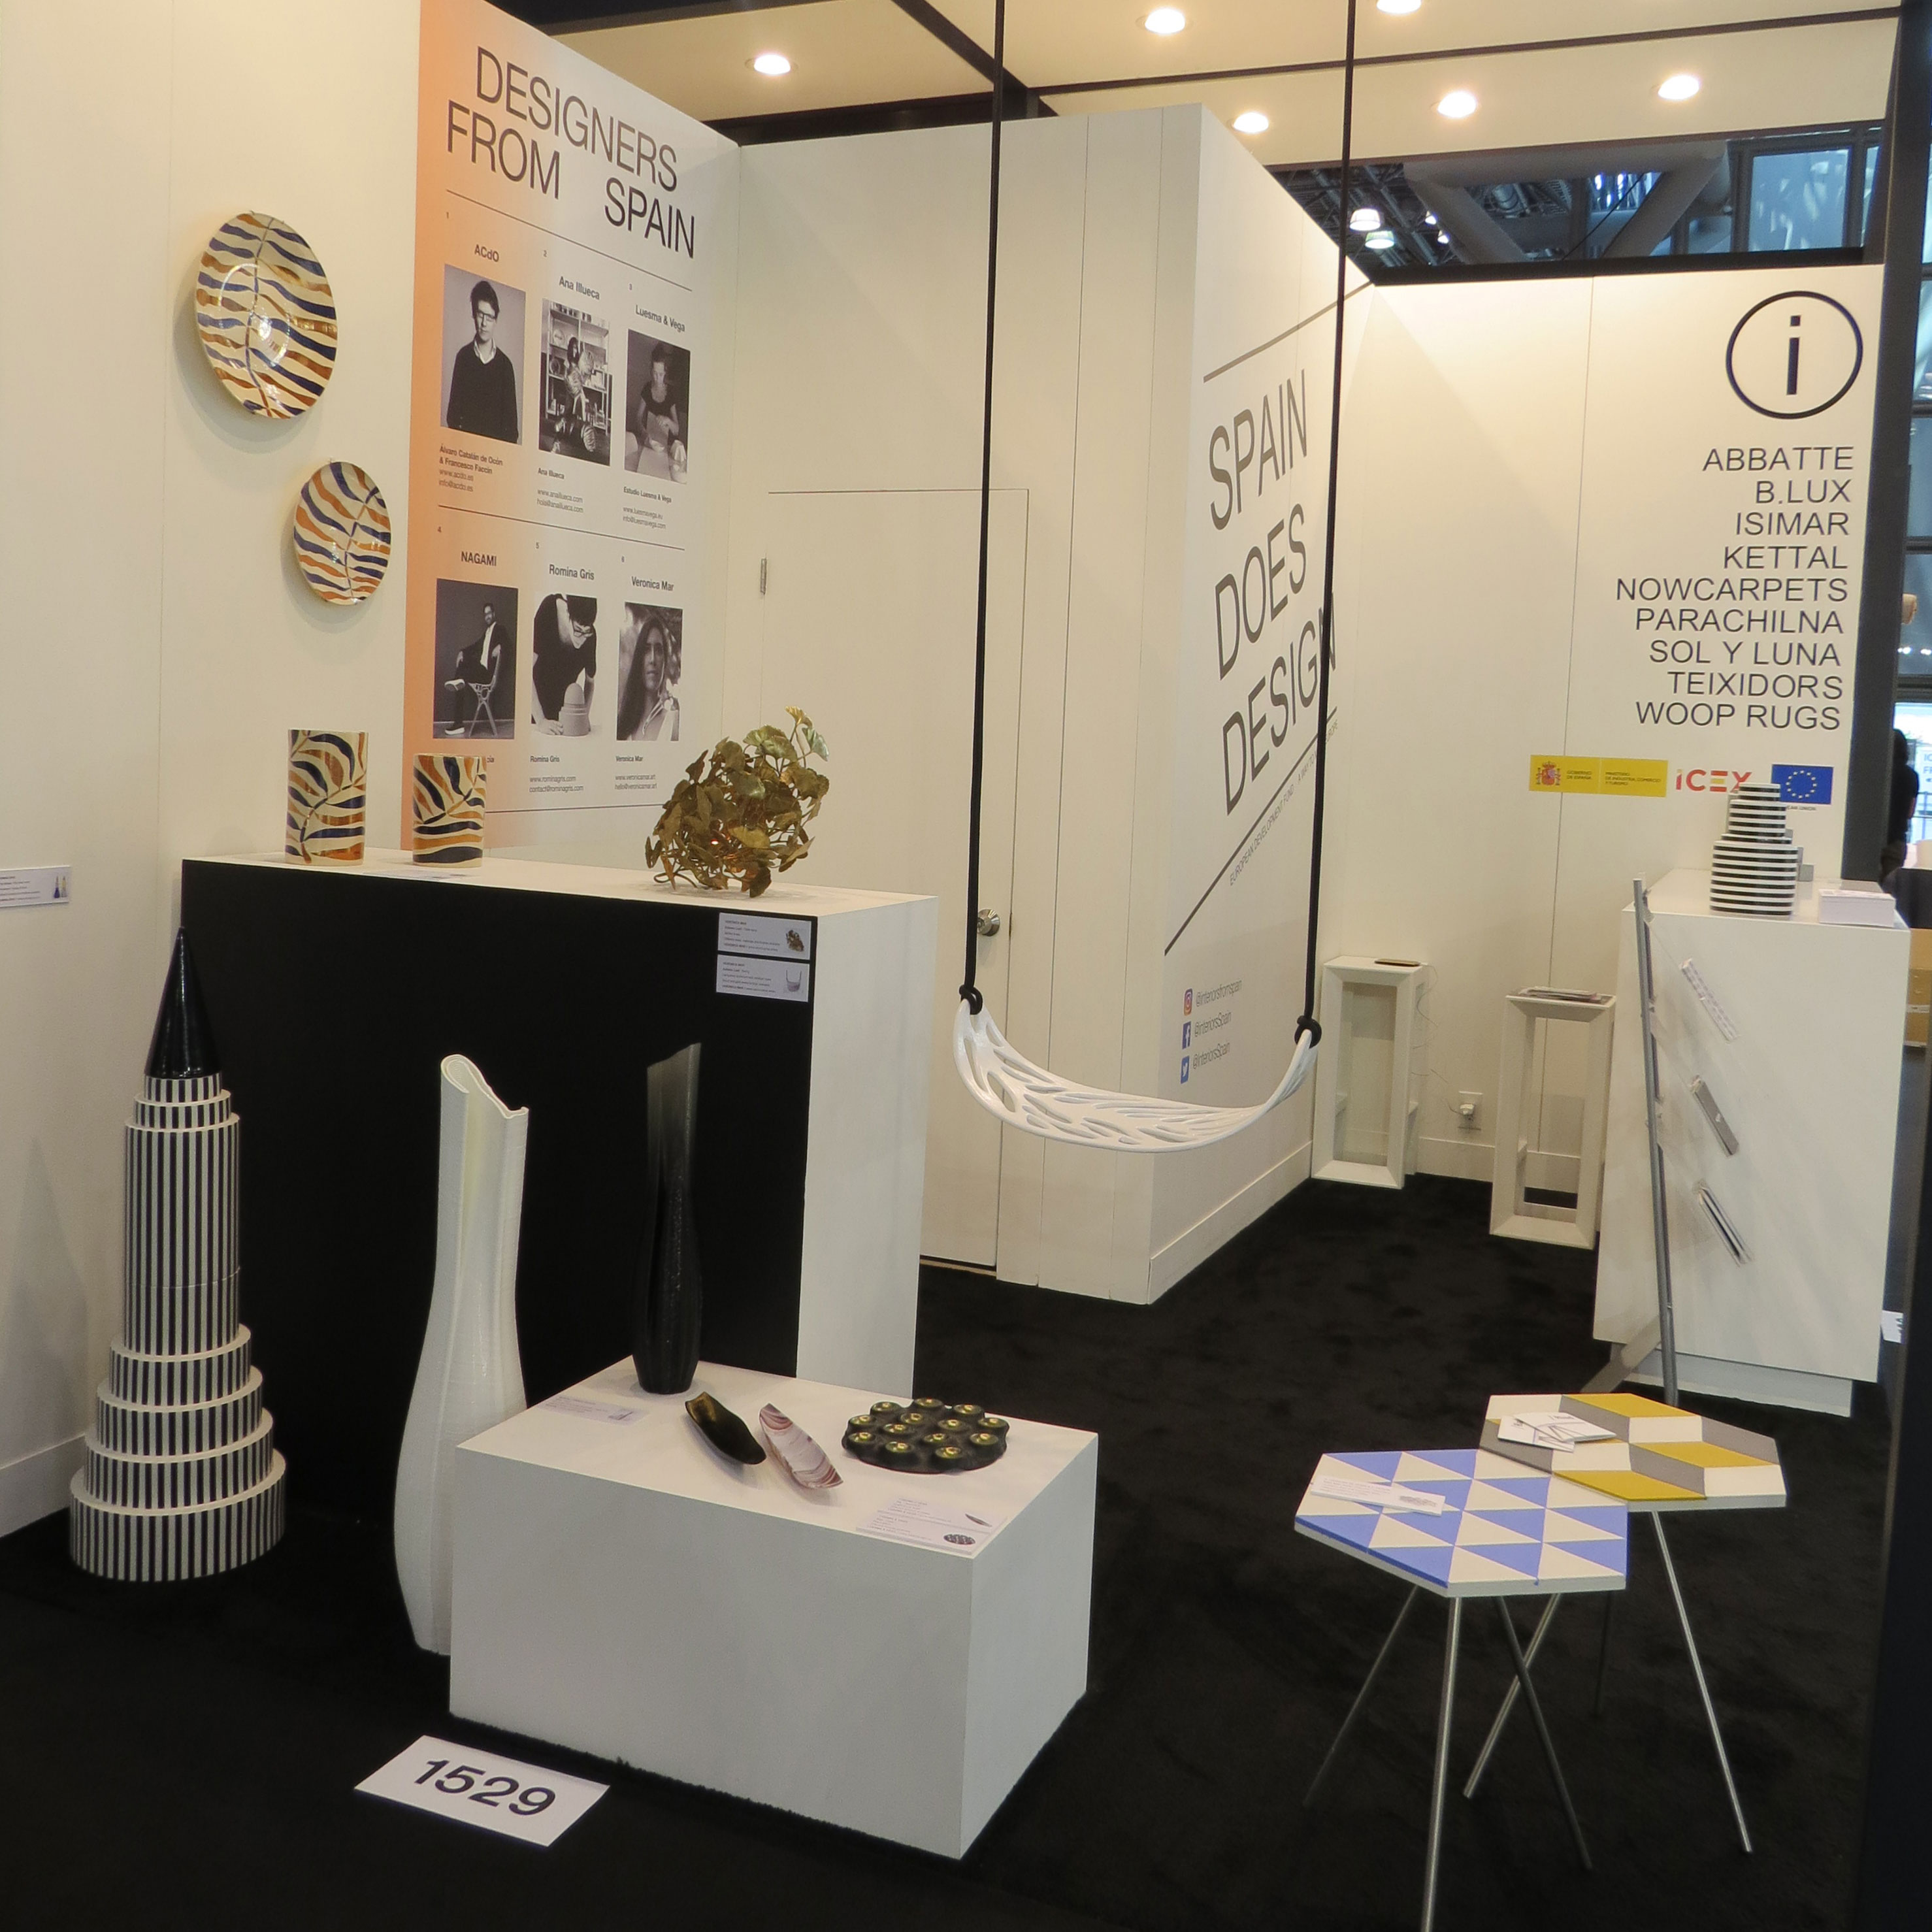 Exhibition Booth In Spanish : Interiors from spain spanish interior design website u003eu003e home